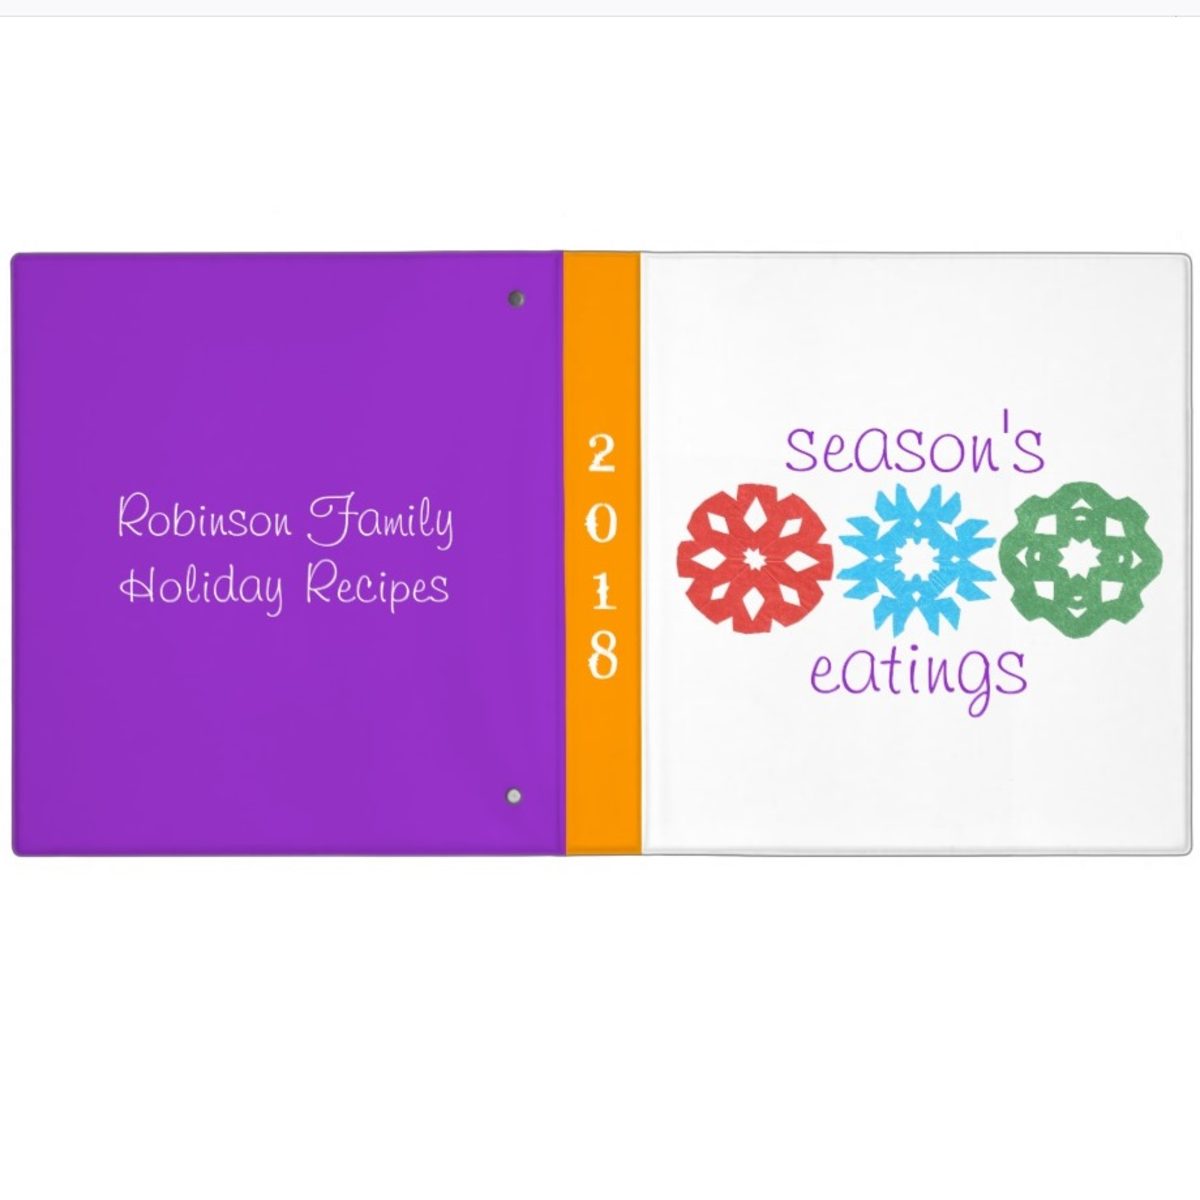 Customize a candy-colored binder for treasured recipes. For source info, see next design.